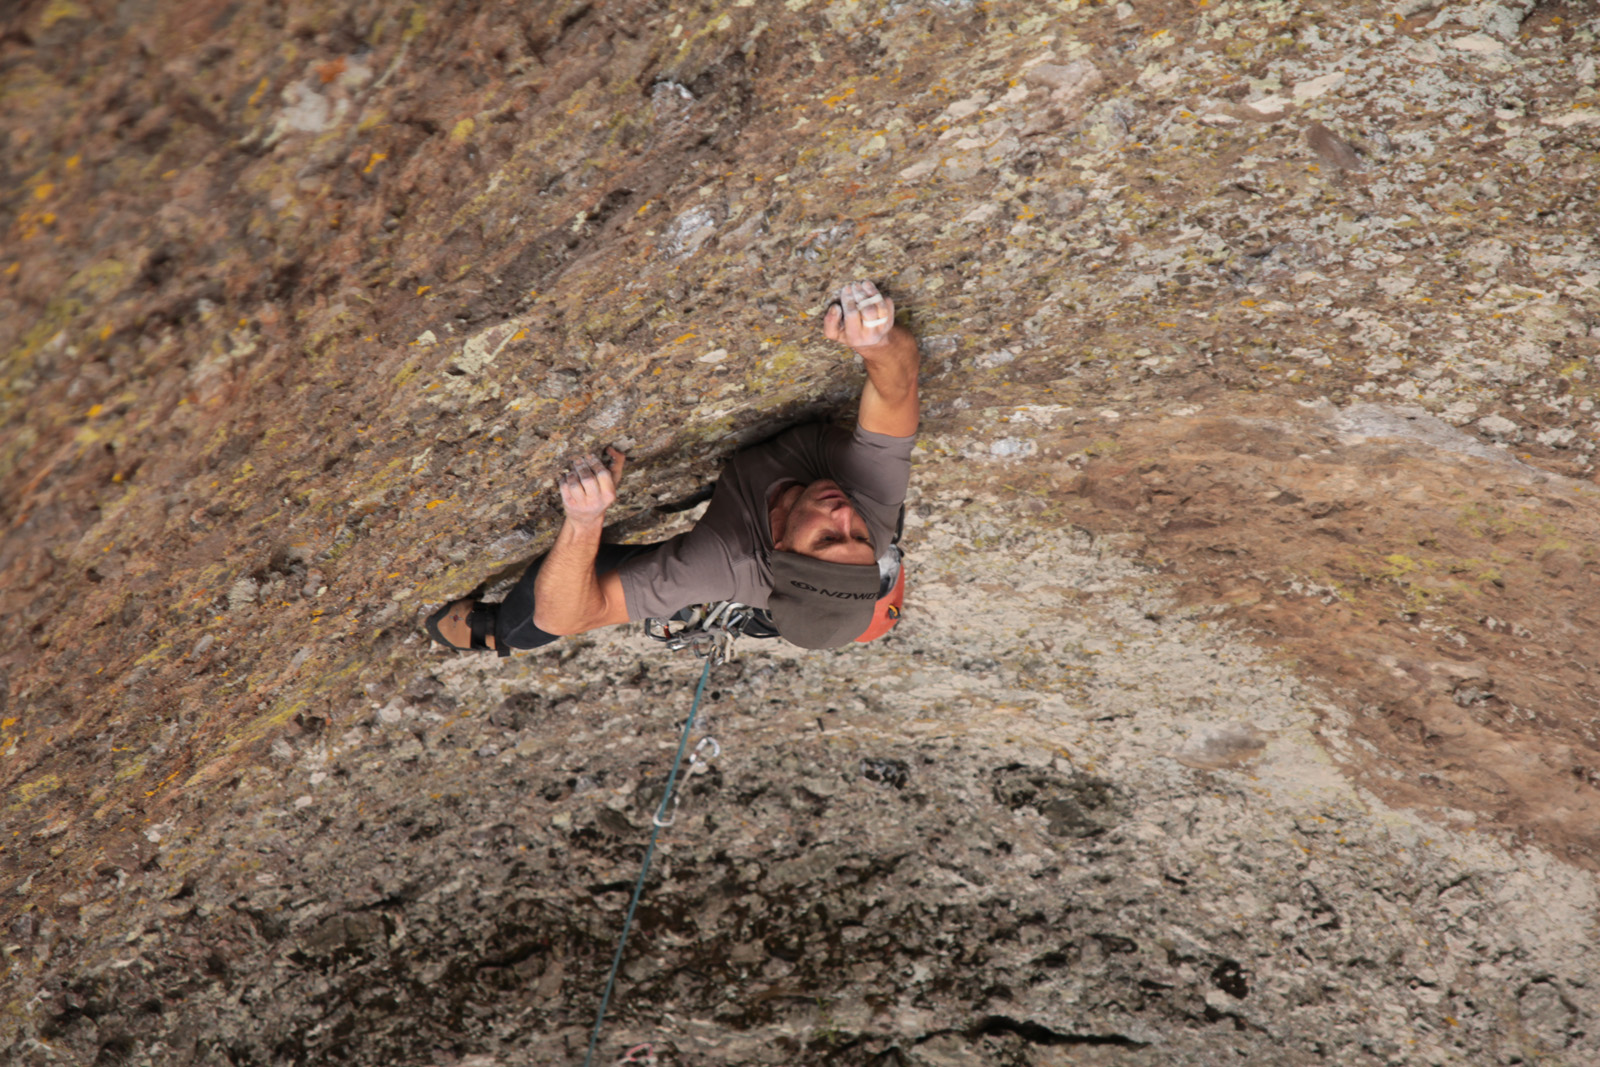 man in grey hat rockclimbing